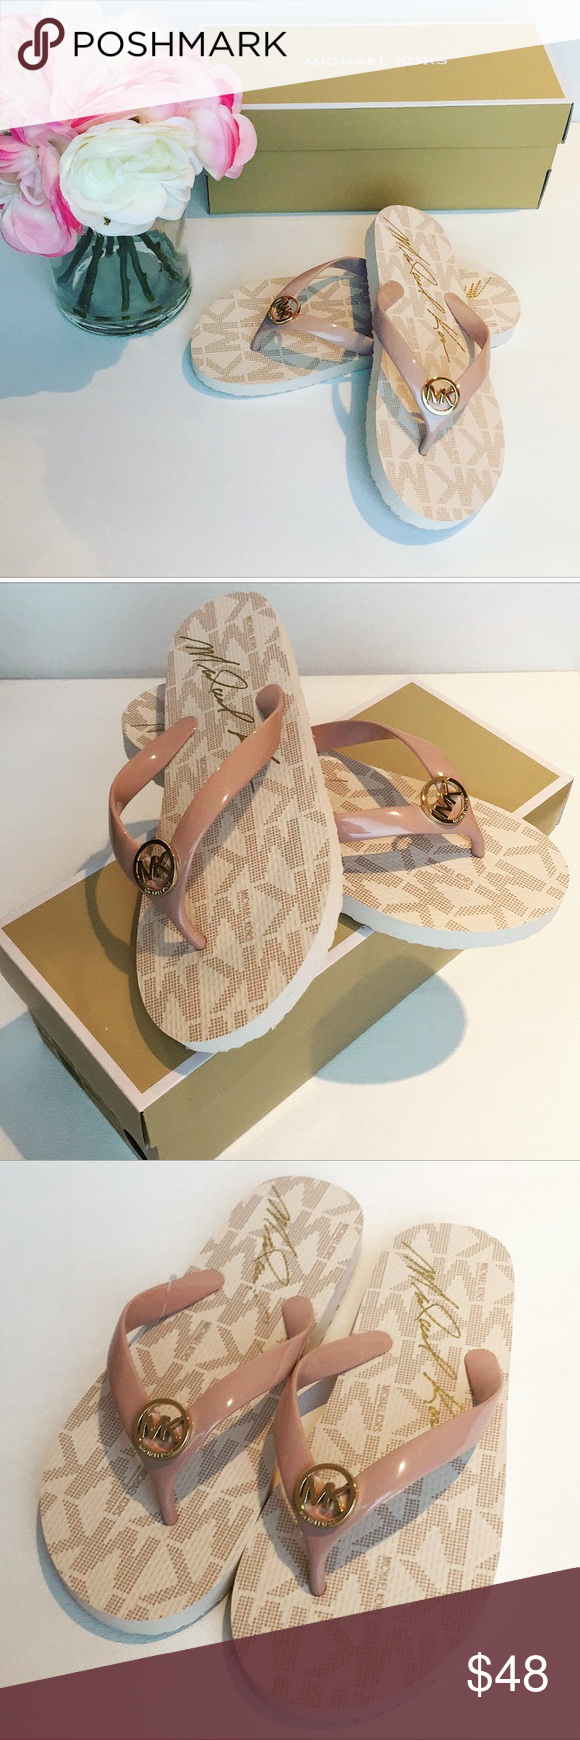 New Michael KORS Jet Set Flip Flops Because nothing puts an extra spring in your step like the right...